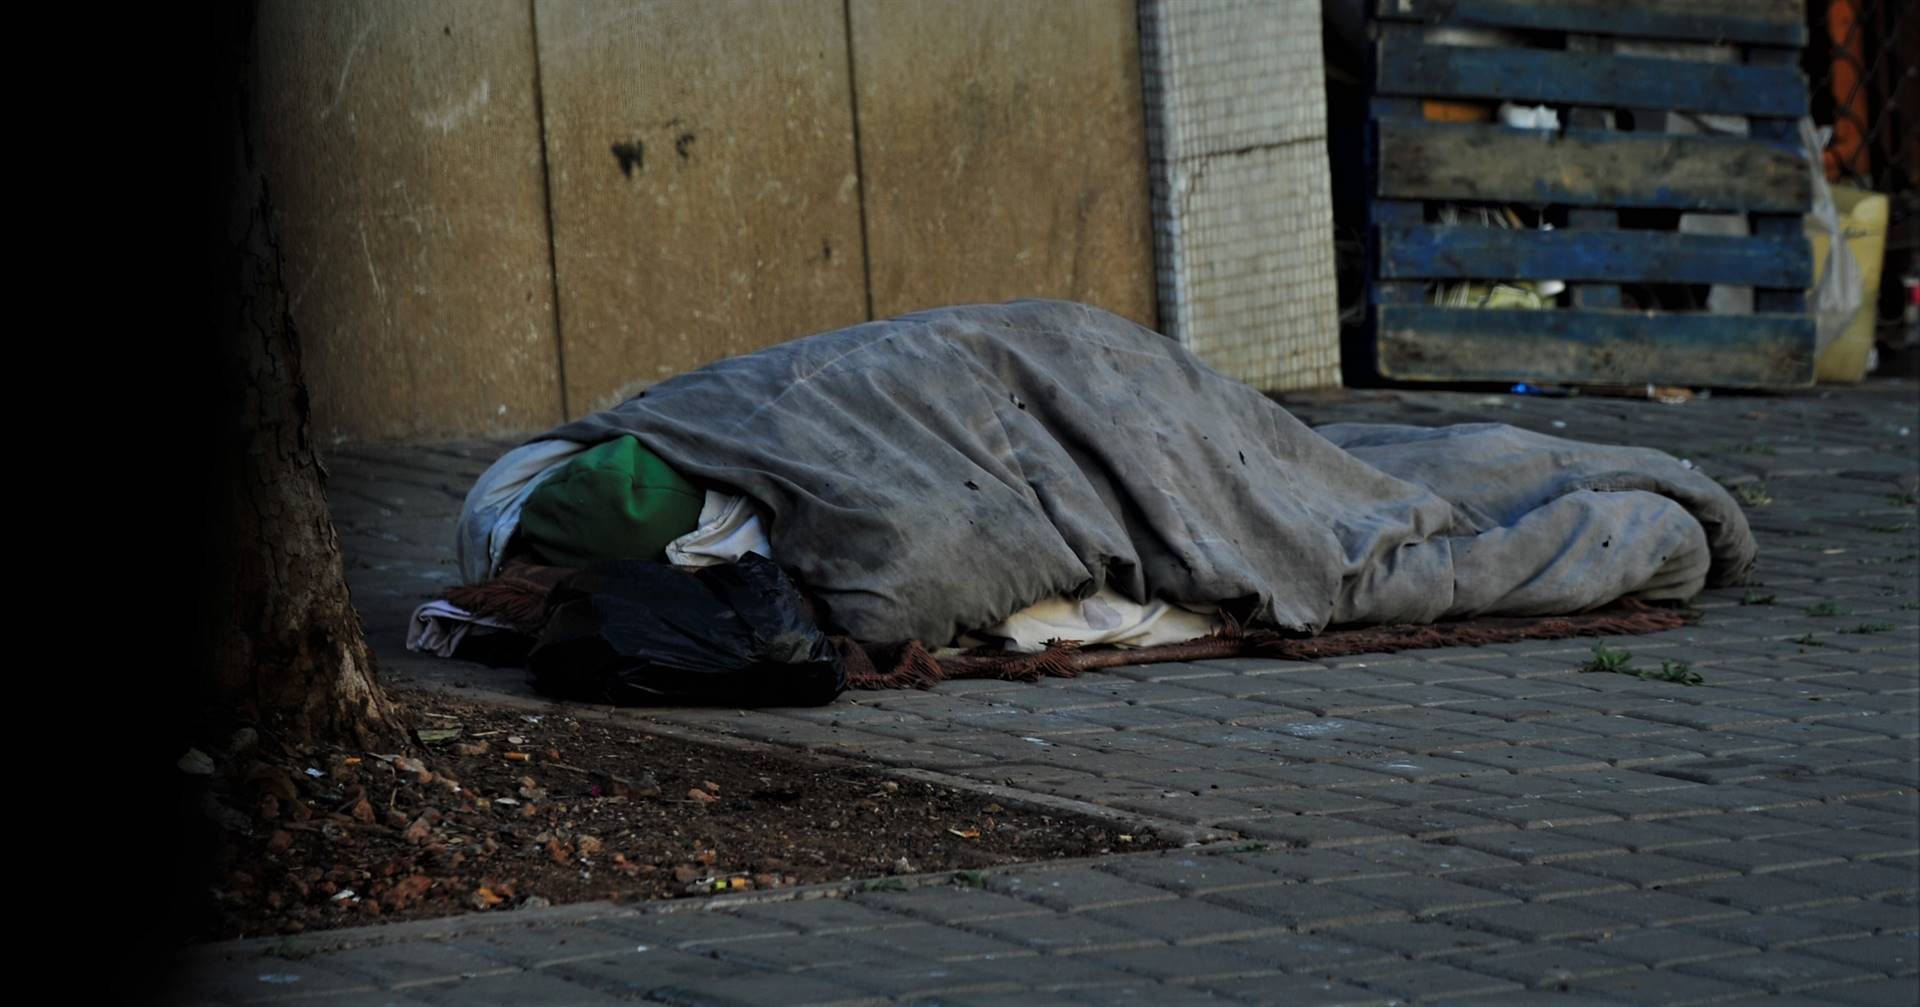 Homeless people are seen at their own shelters in the streets of Braamfontein in Johannesburg. Photo: Rosetta Msimango